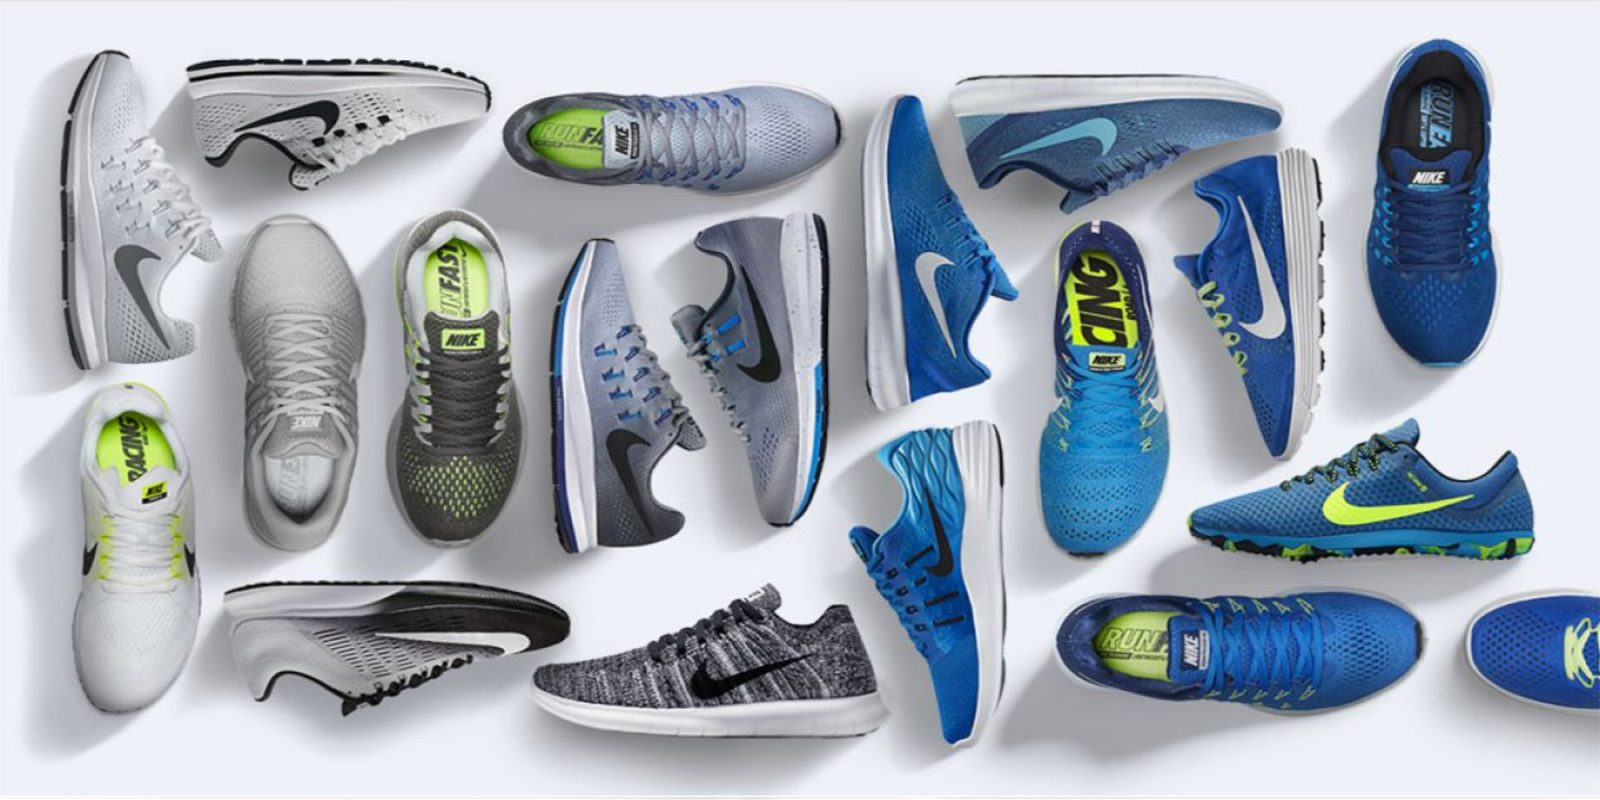 Eastbay's End of Summer Sale offers $40 off orders of $150: Nike, adidas, more